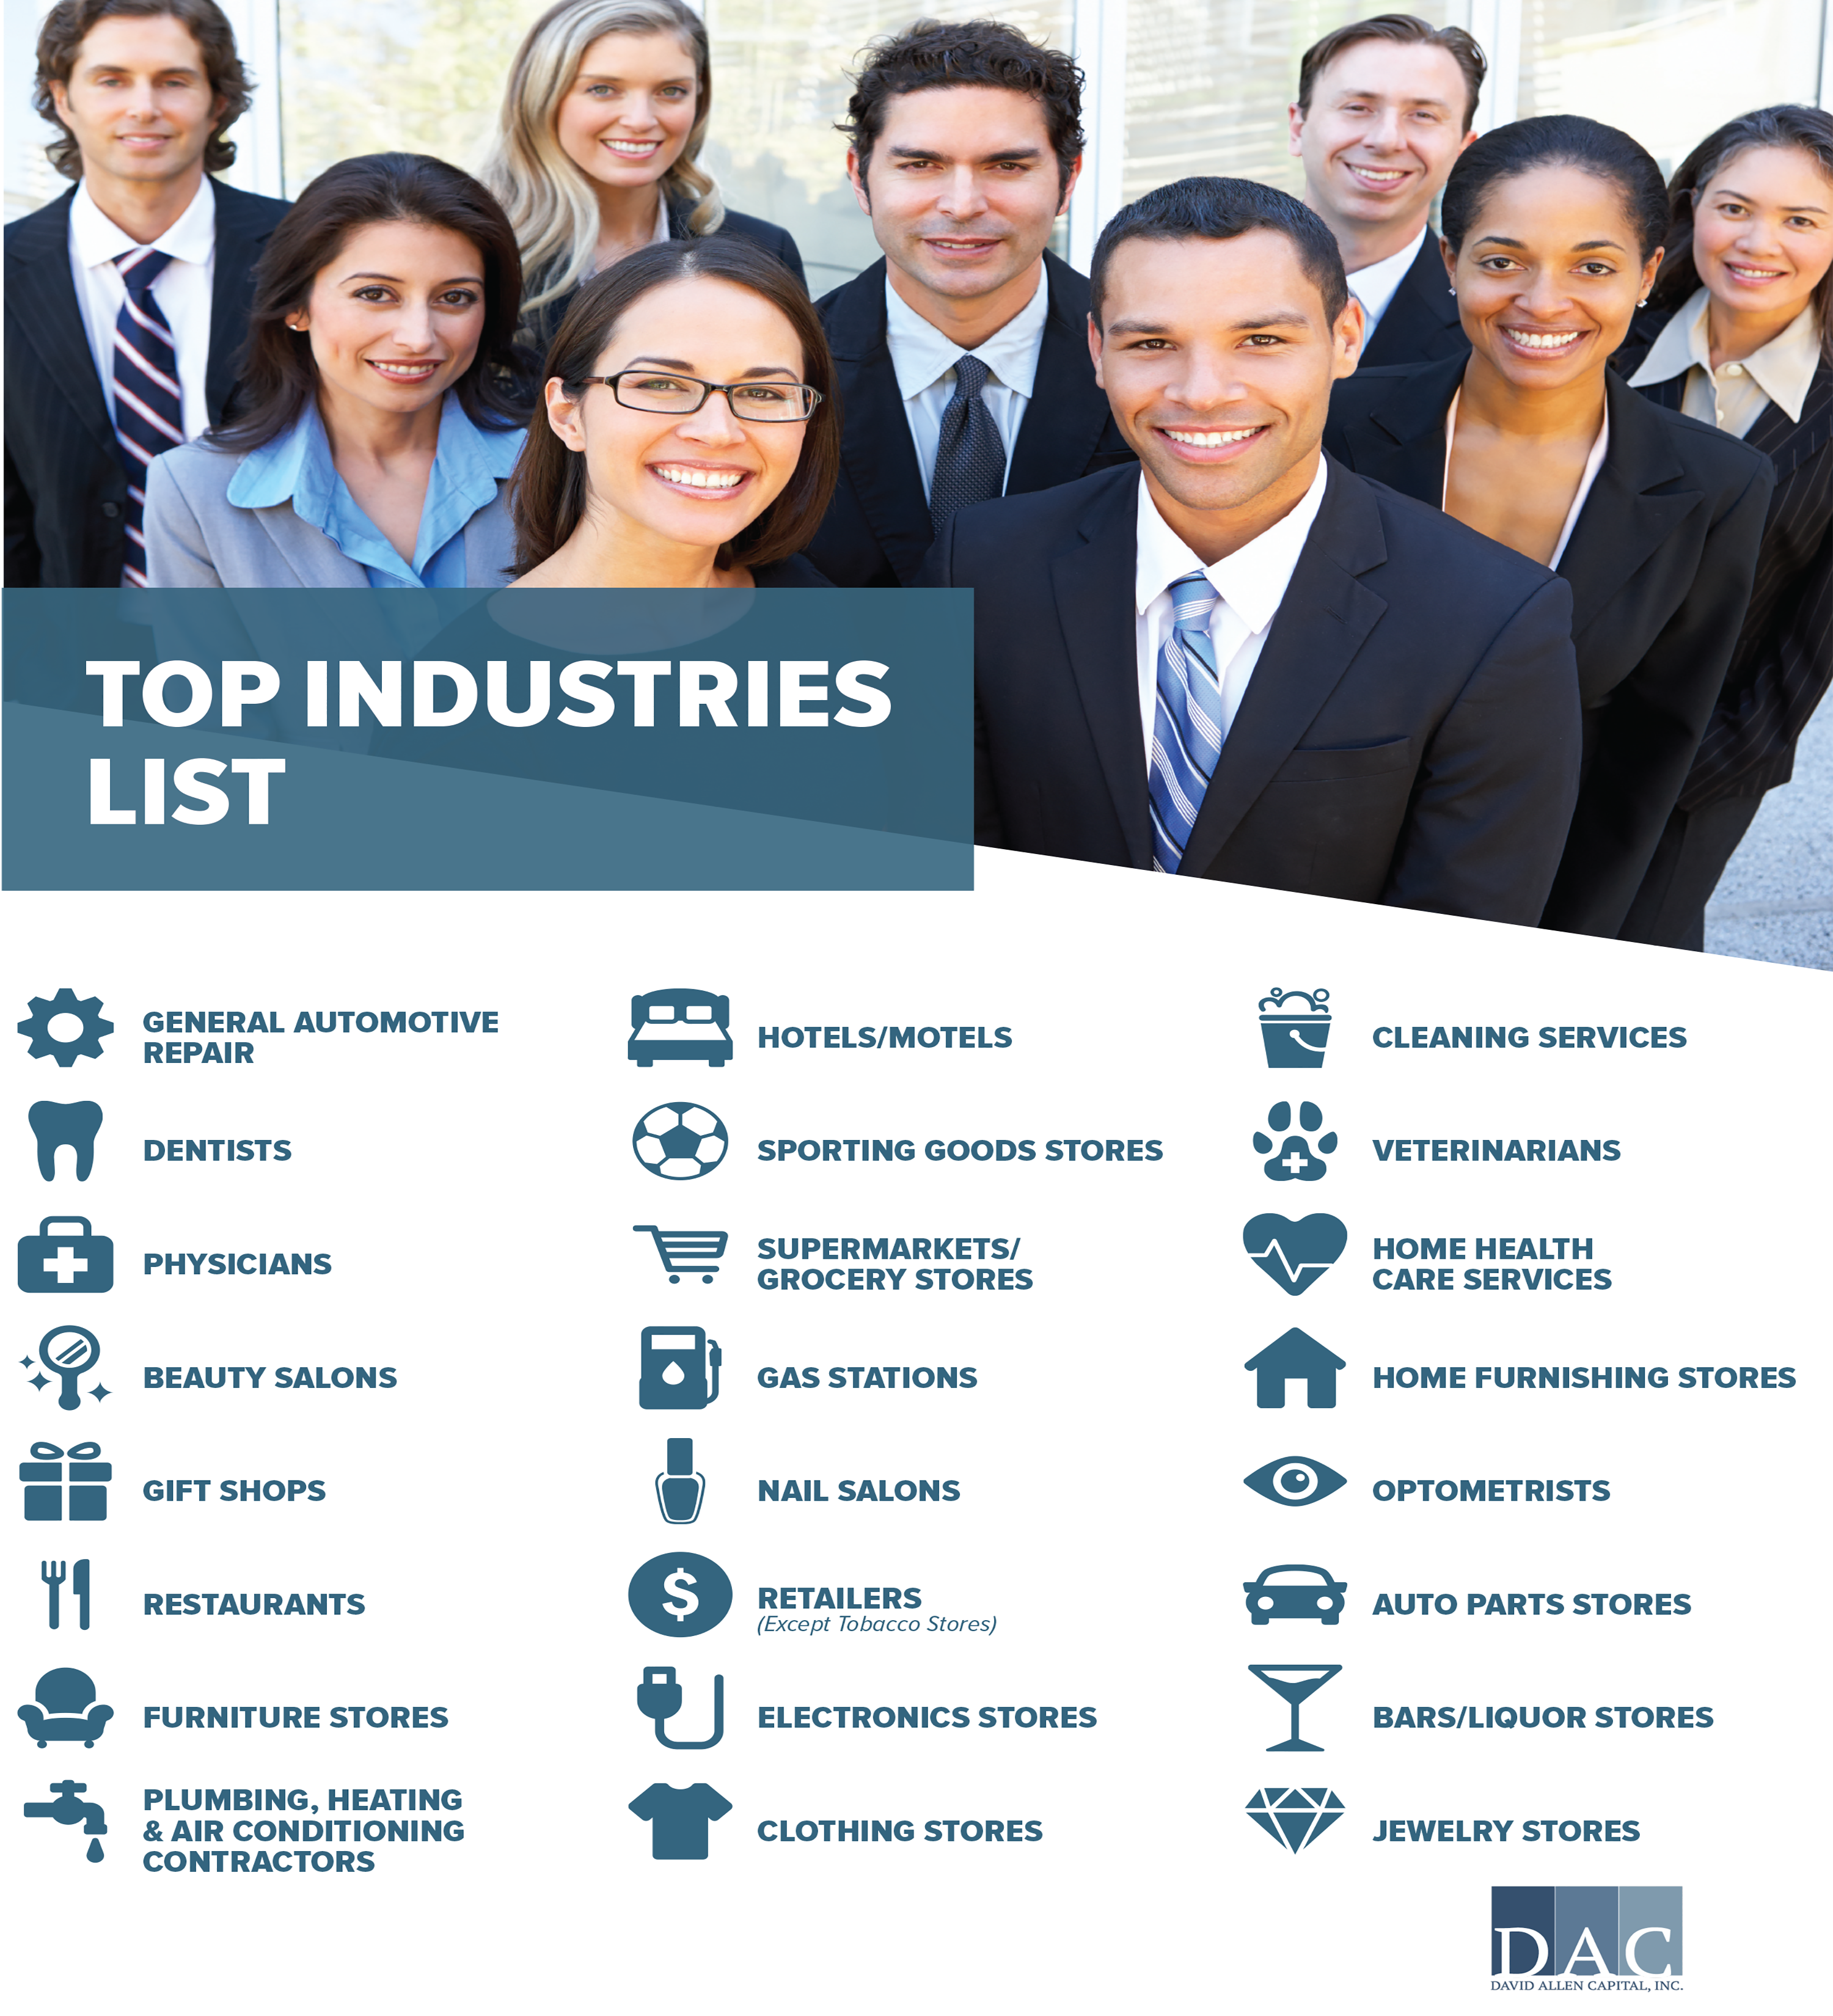 TOP Funded INDUSTRIES, WE CAN GET THESE FUNDED FAST, GENERAL AUTOMOTIVE REPAIR,  HOTELS/MOTELS & CLEANING SERVICES, DENTISTS , SPORTING GOODS STORES  VETERINARIANS, PHYSICIANS,  SUPERMARKETS/GROCERY STORES, HOME HEALTH CARE SERVICES, BEAUTY SALONS, GAS STATIONS, HOME FURNISHING STORES, GIFT SHOPS, NAIL SALONS, OPTOMETRISTS, RESTAURANTS, RETAILERS (Except Tobacco Stores), AUTO PARTS STORES, FURNITURE STORES, ELECTRONICS STORES, BARS / LIQUOR STORES, PLUMBING, HEATING & AIR CONDITIONING, CONTRACTORS (of all types), CLOTHING STORES, JEWELRY STORES